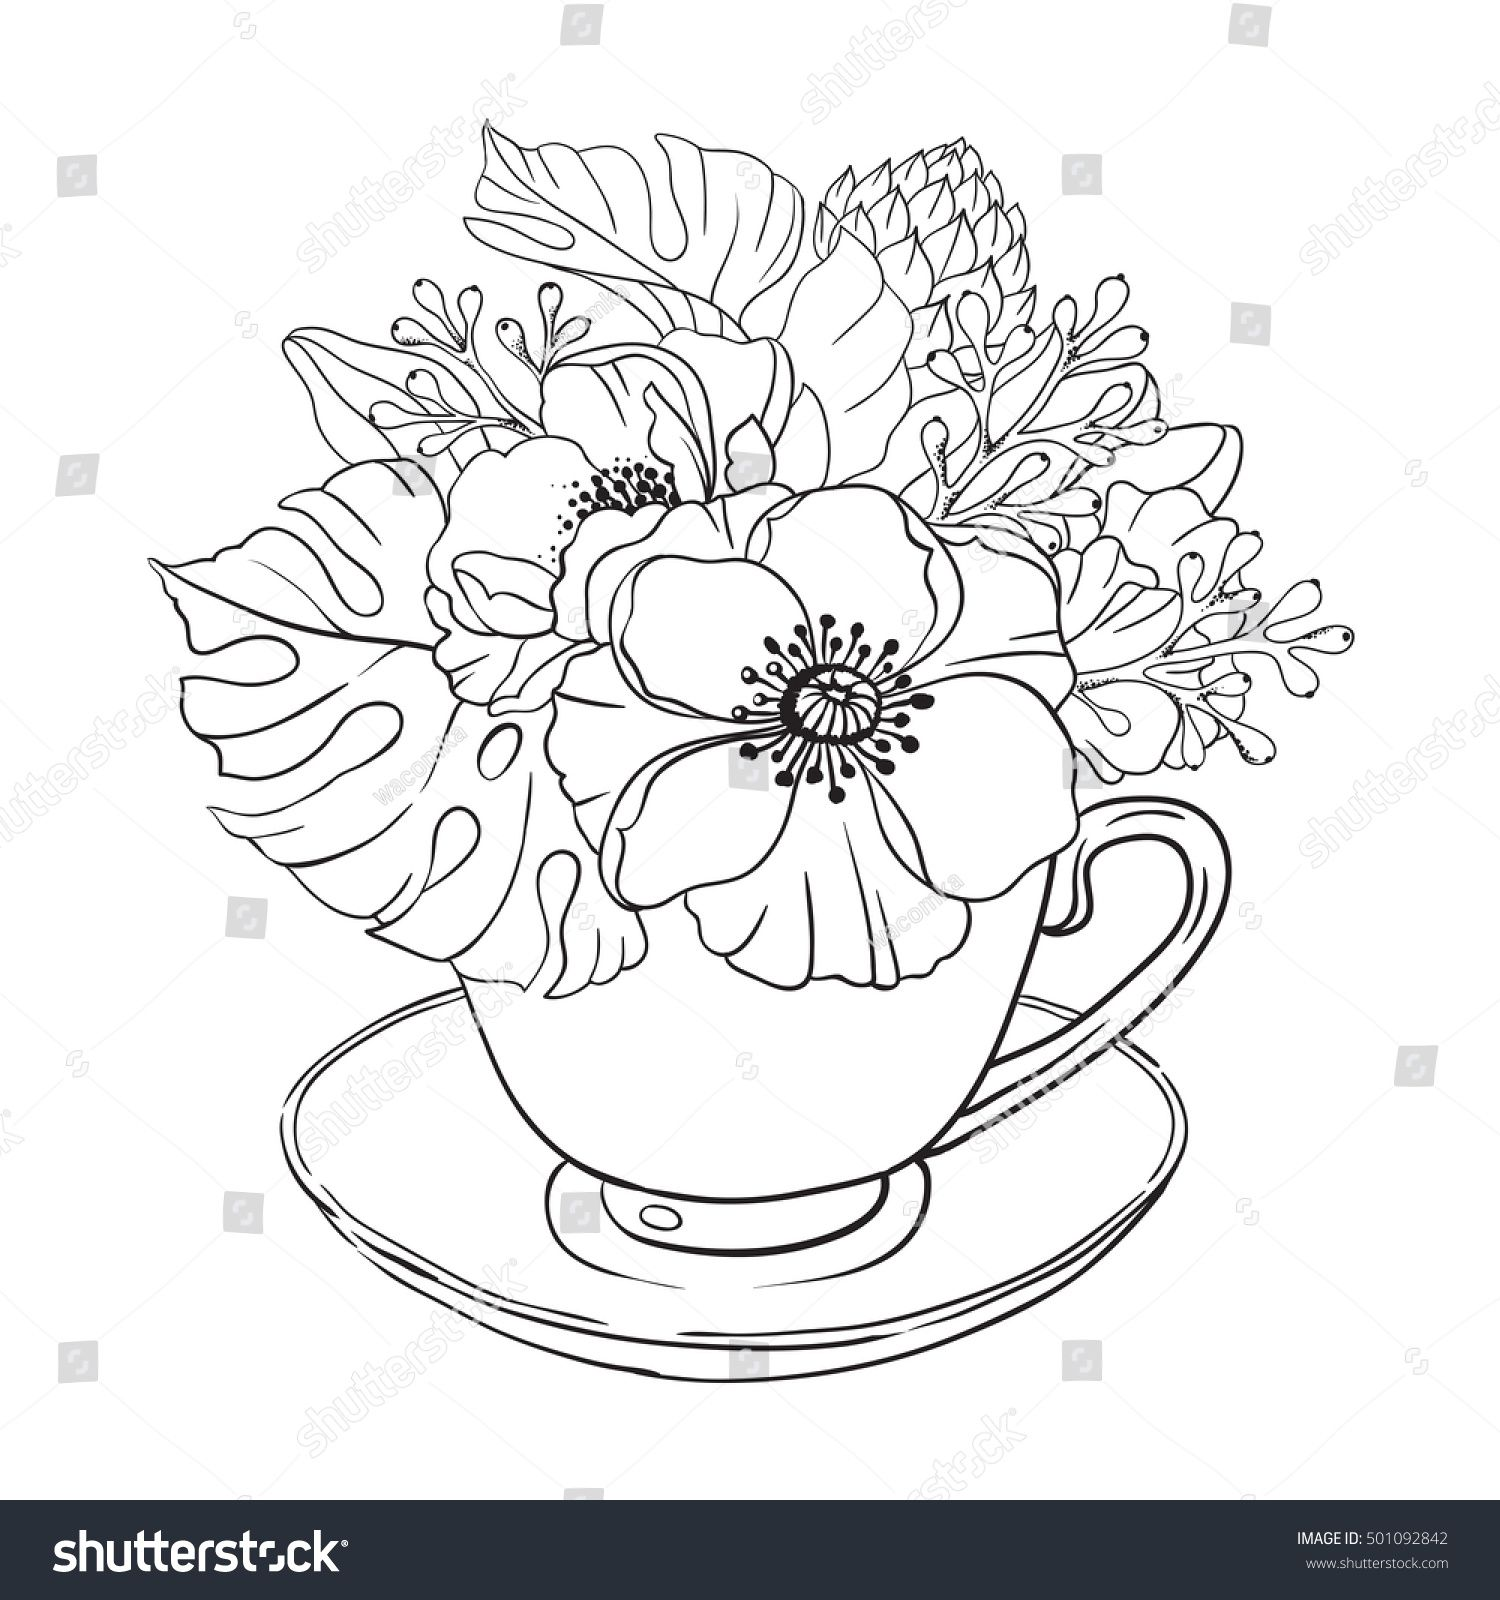 stock-vector-vector-illustration-adult-coloring-page-flowers-bouquet ...